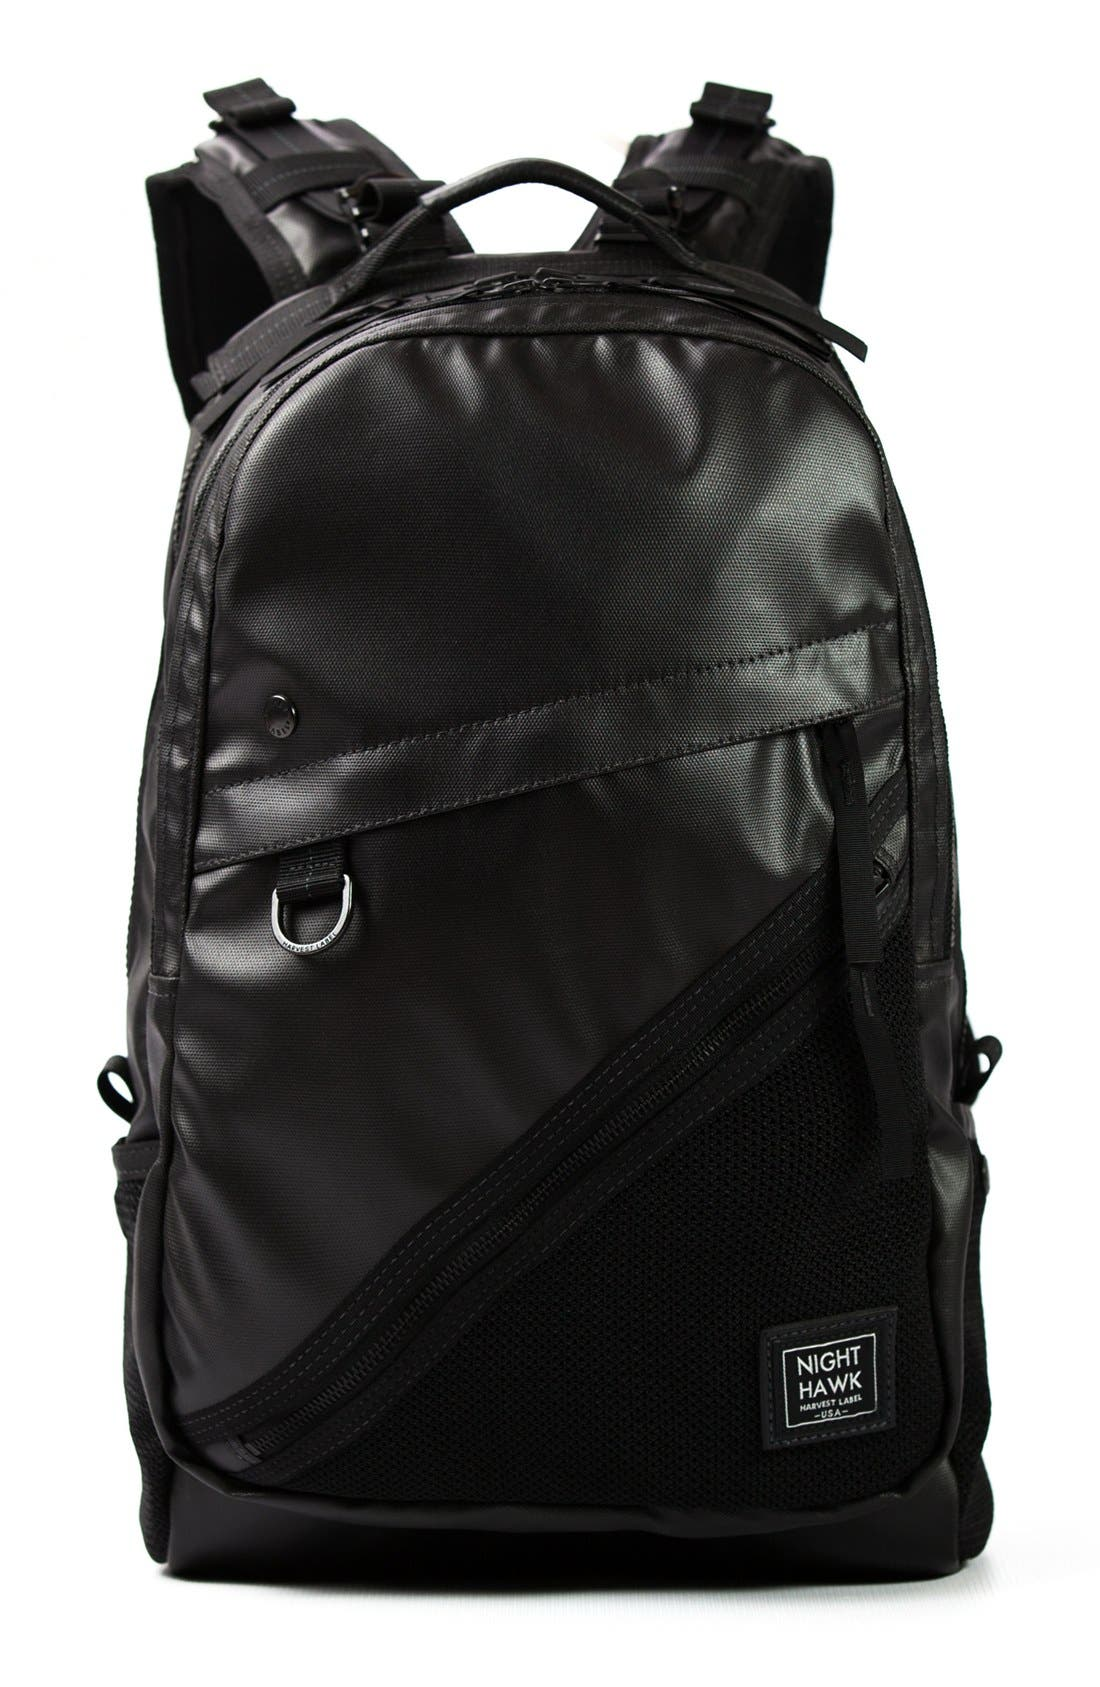 Harvest Label 'NightHawk' Backpack